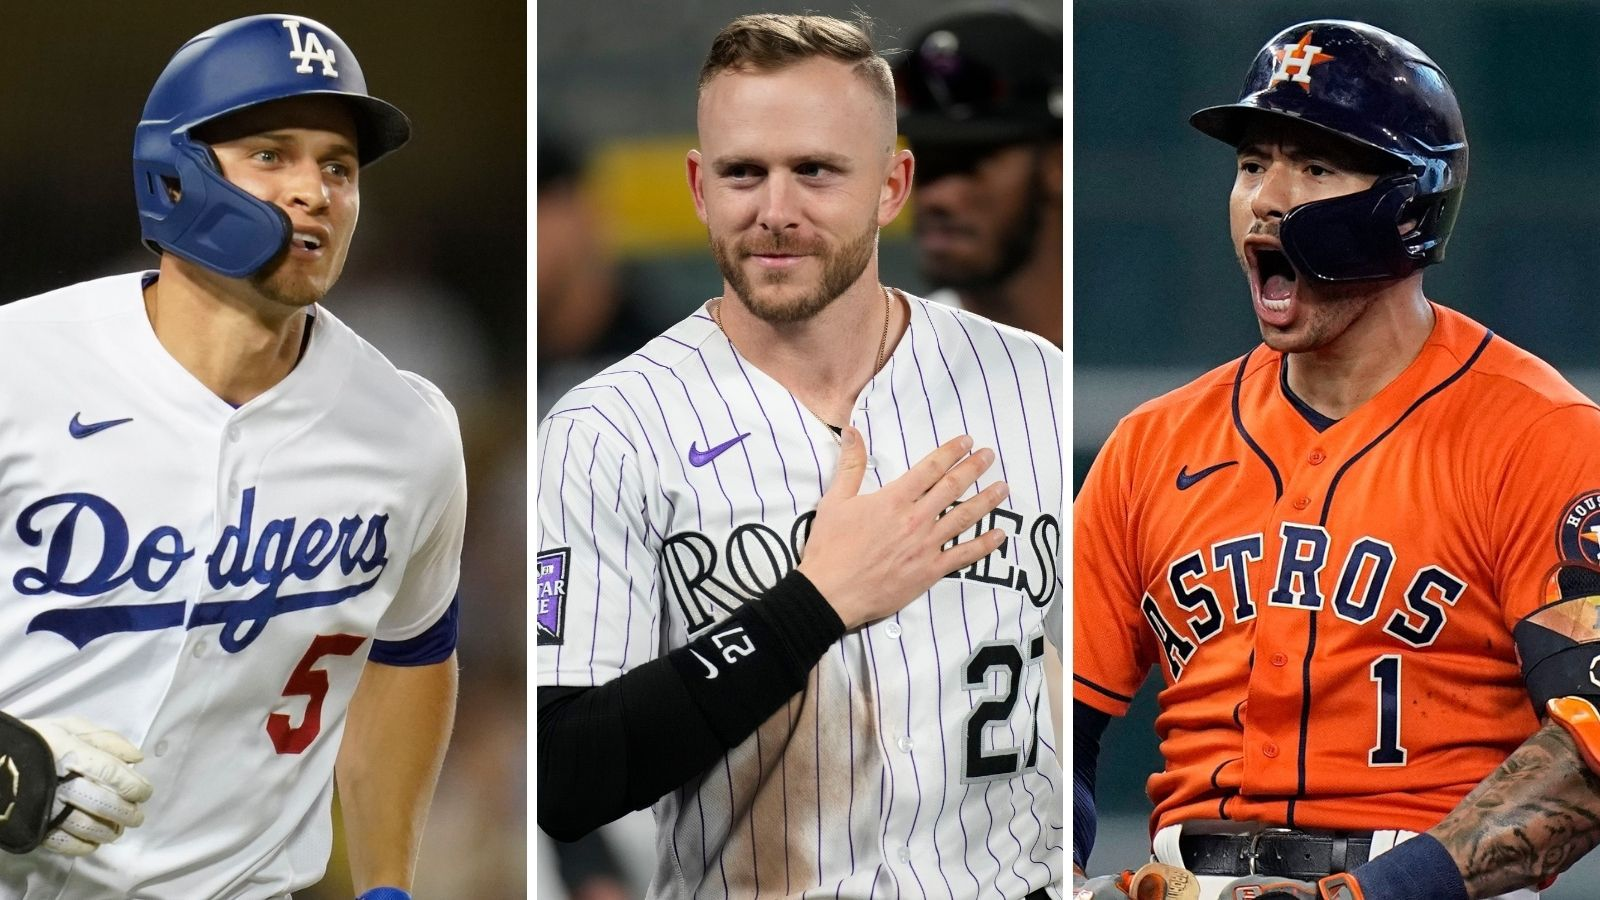 From L to R: Dodgers shortstop Corey Seager, Rockies shortstop Trevor Story and Astros shortstop Carlos Correa. Images from The Associated Press.